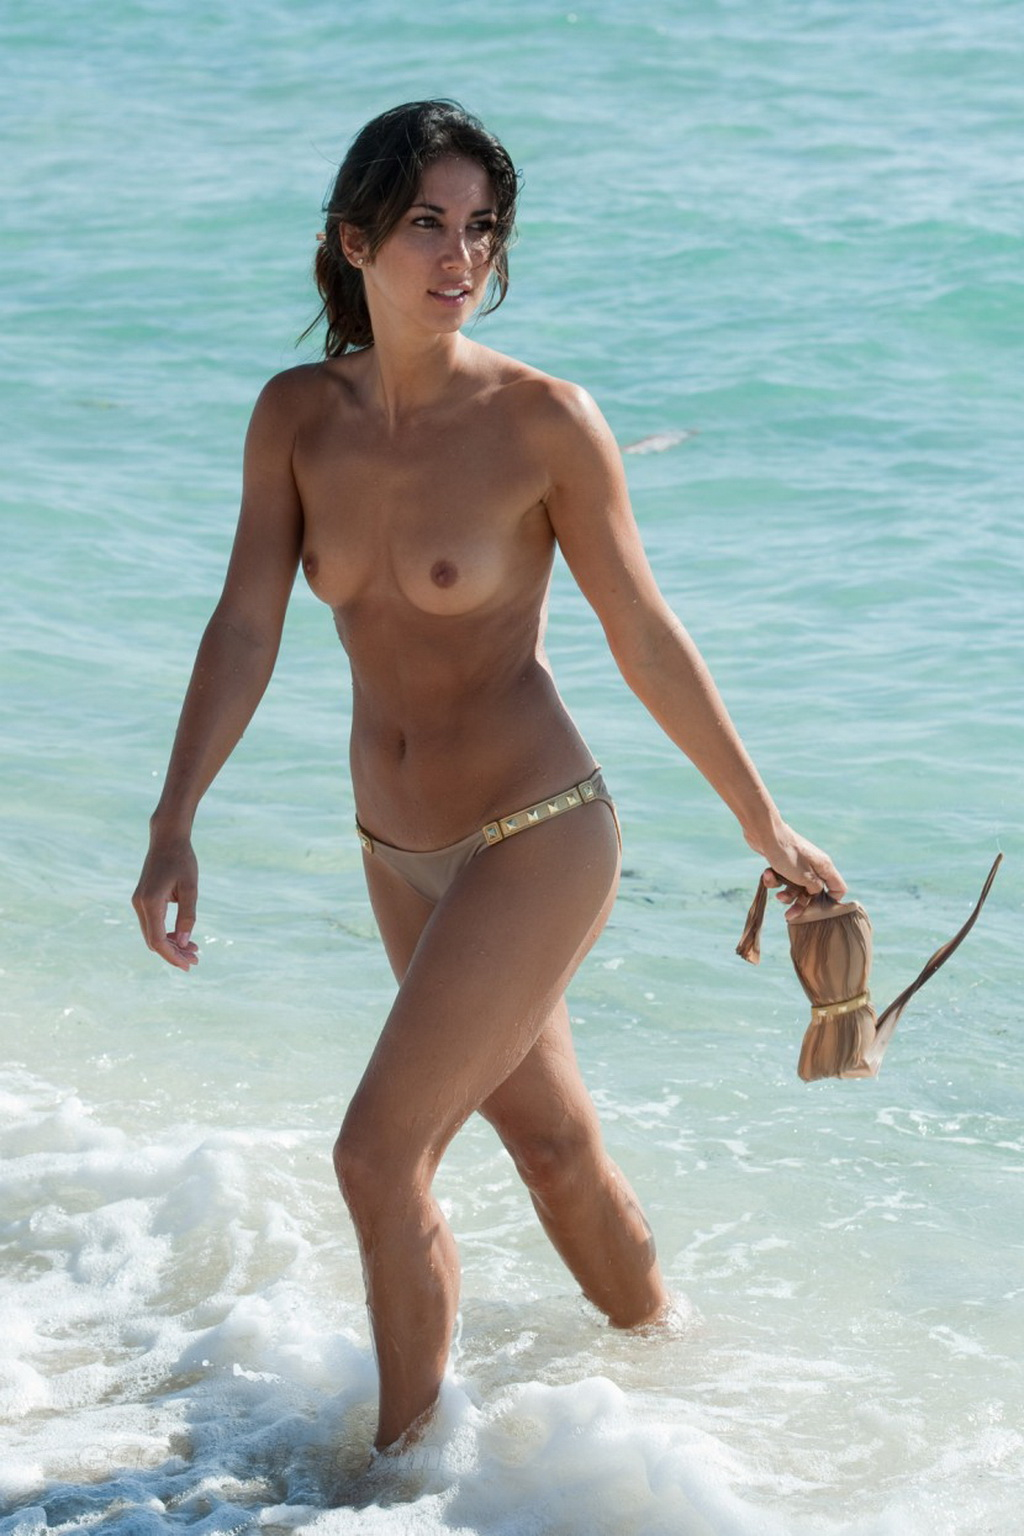 Leilani Dowding topless showing off her small tits on Miami Beach: www.celeb-for-free.com/pics/celeb2609/index.html